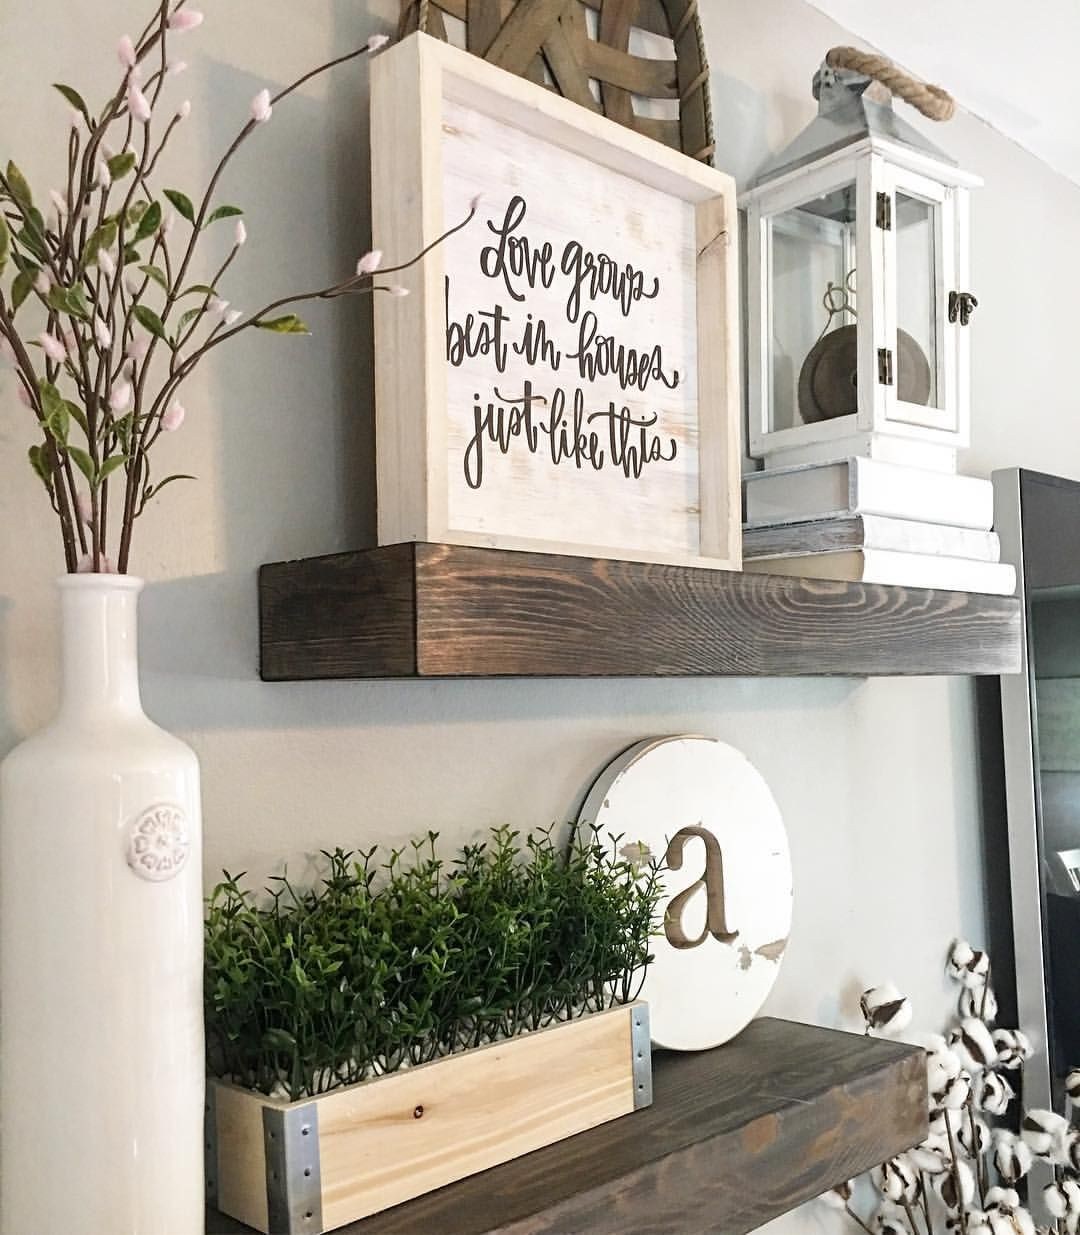 Floating Shelves, Wood Shelves, Farmhouse Decor, Farmhouse Style, Modern  Farmhouse, Lantern, Greenery, Living Room Decor, Neutral Decor, Hobby Lobby  Decor, ...